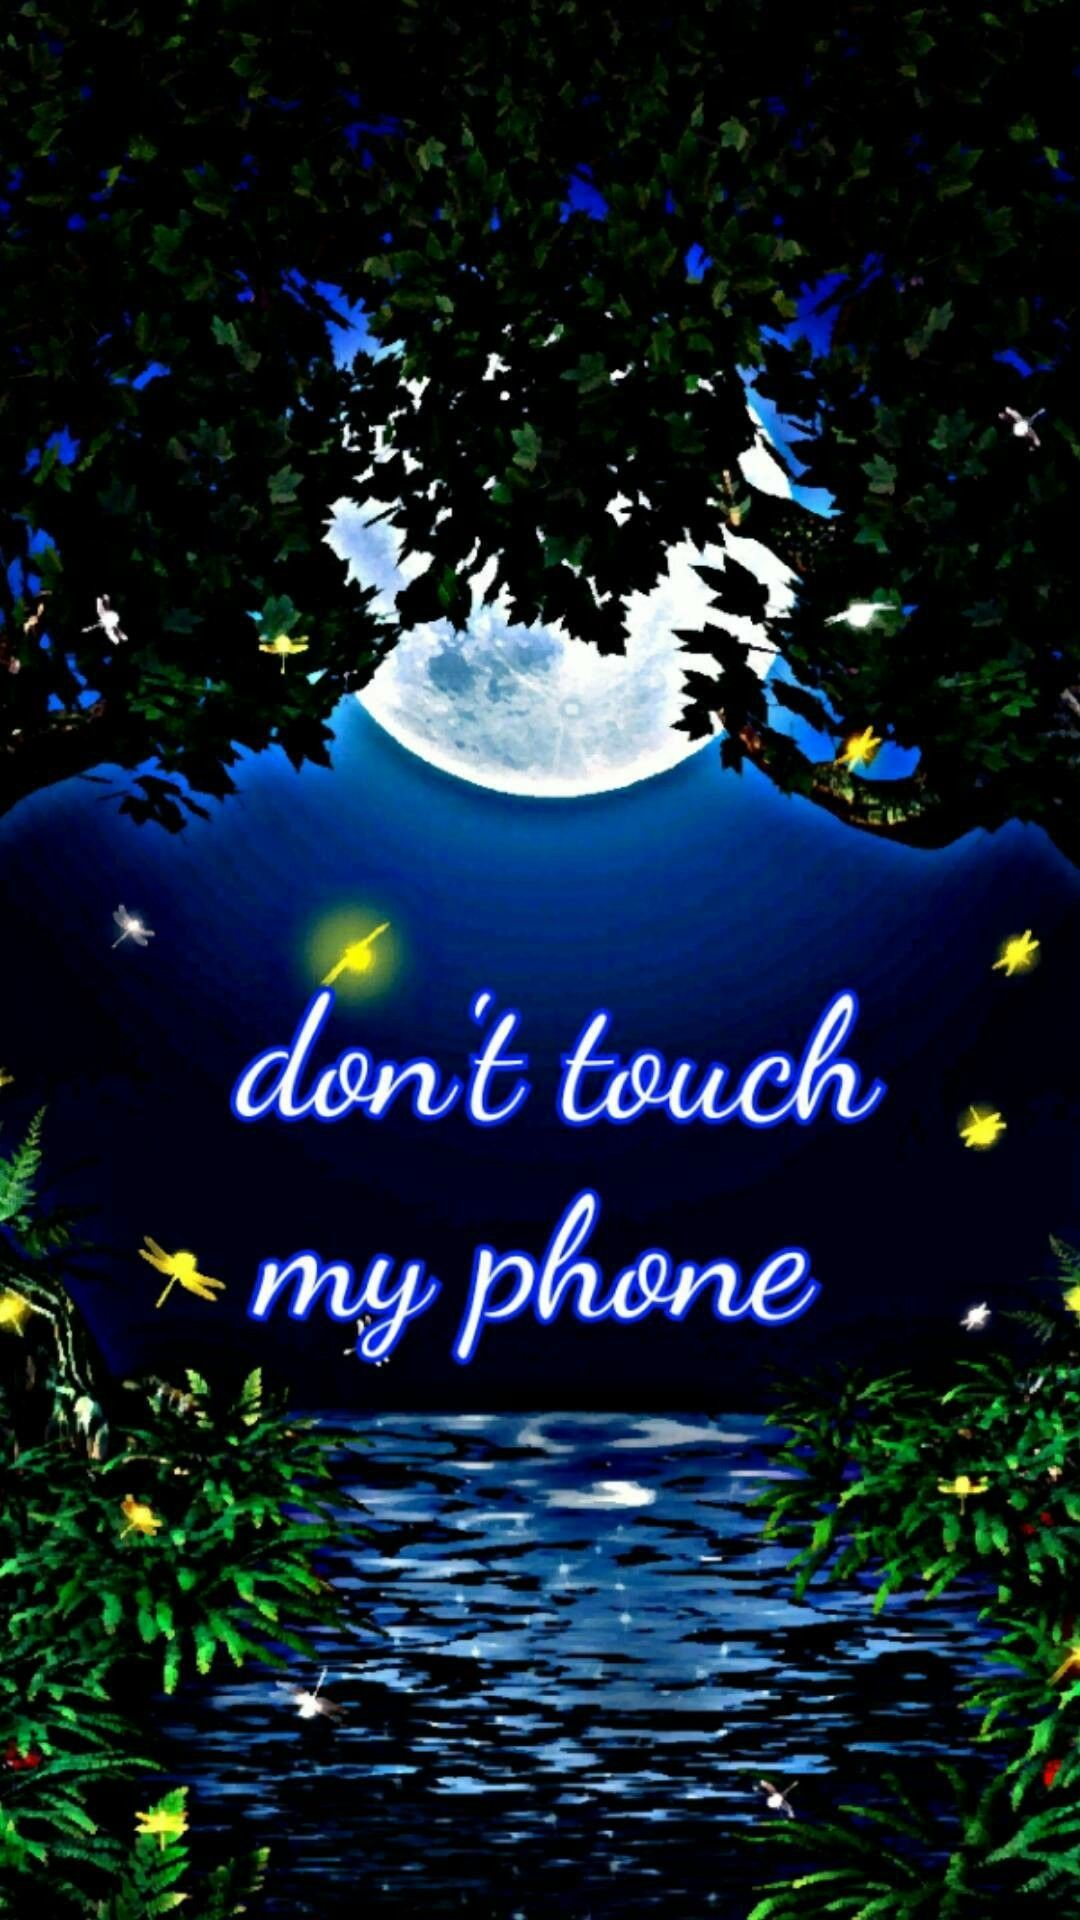 Full Moon Don T Touch My Phone Dont Touch My Phone Wallpapers Phone Lock Screen Wallpaper Joker Iphone Wallpaper